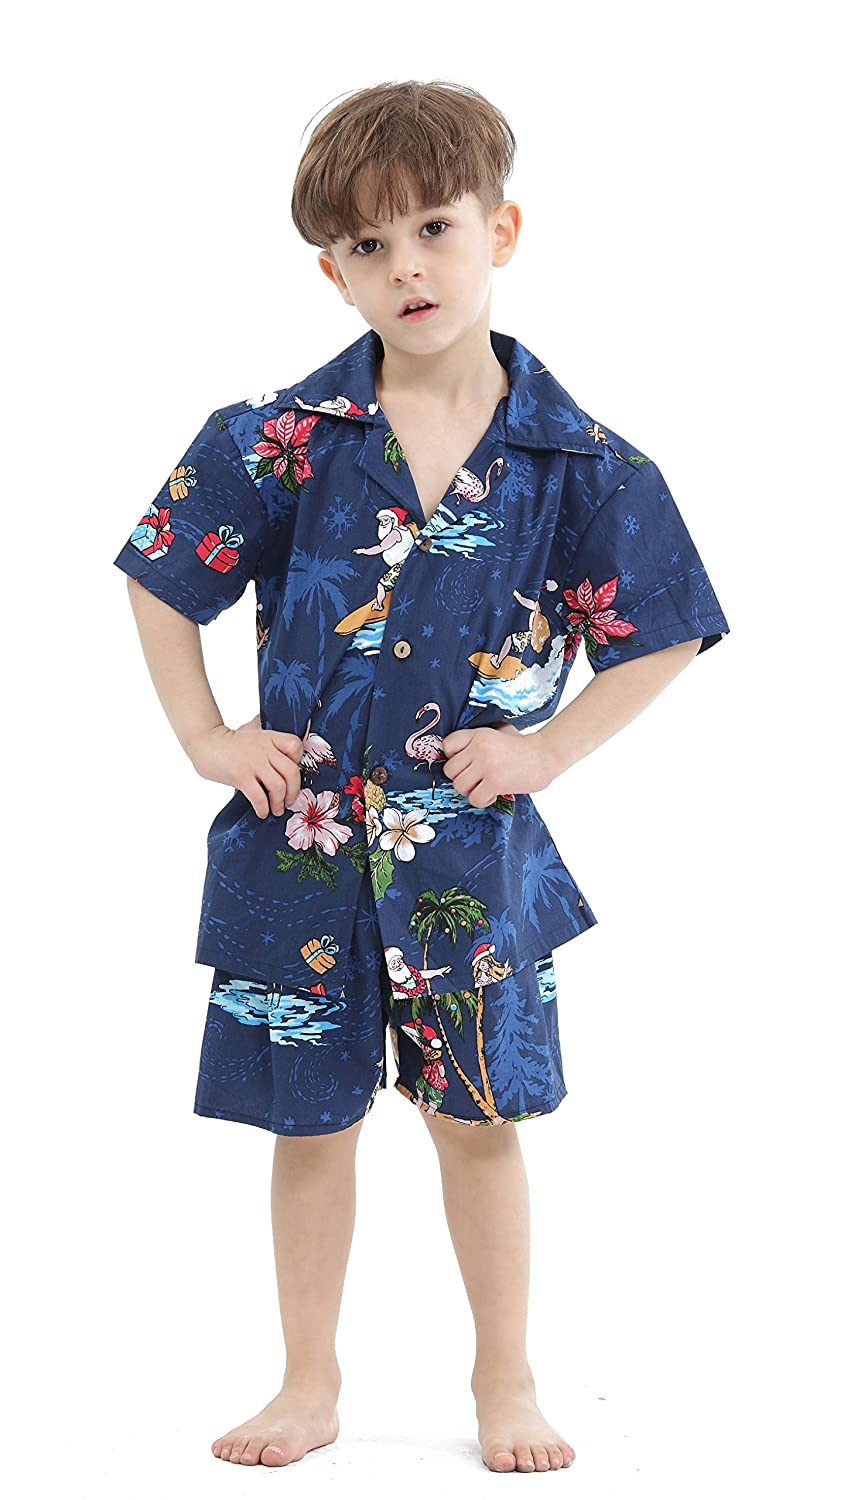 Hawaii Hangover Boy Aloha Luau Shirt Christmas Shirt Cabana Set in Red Santa